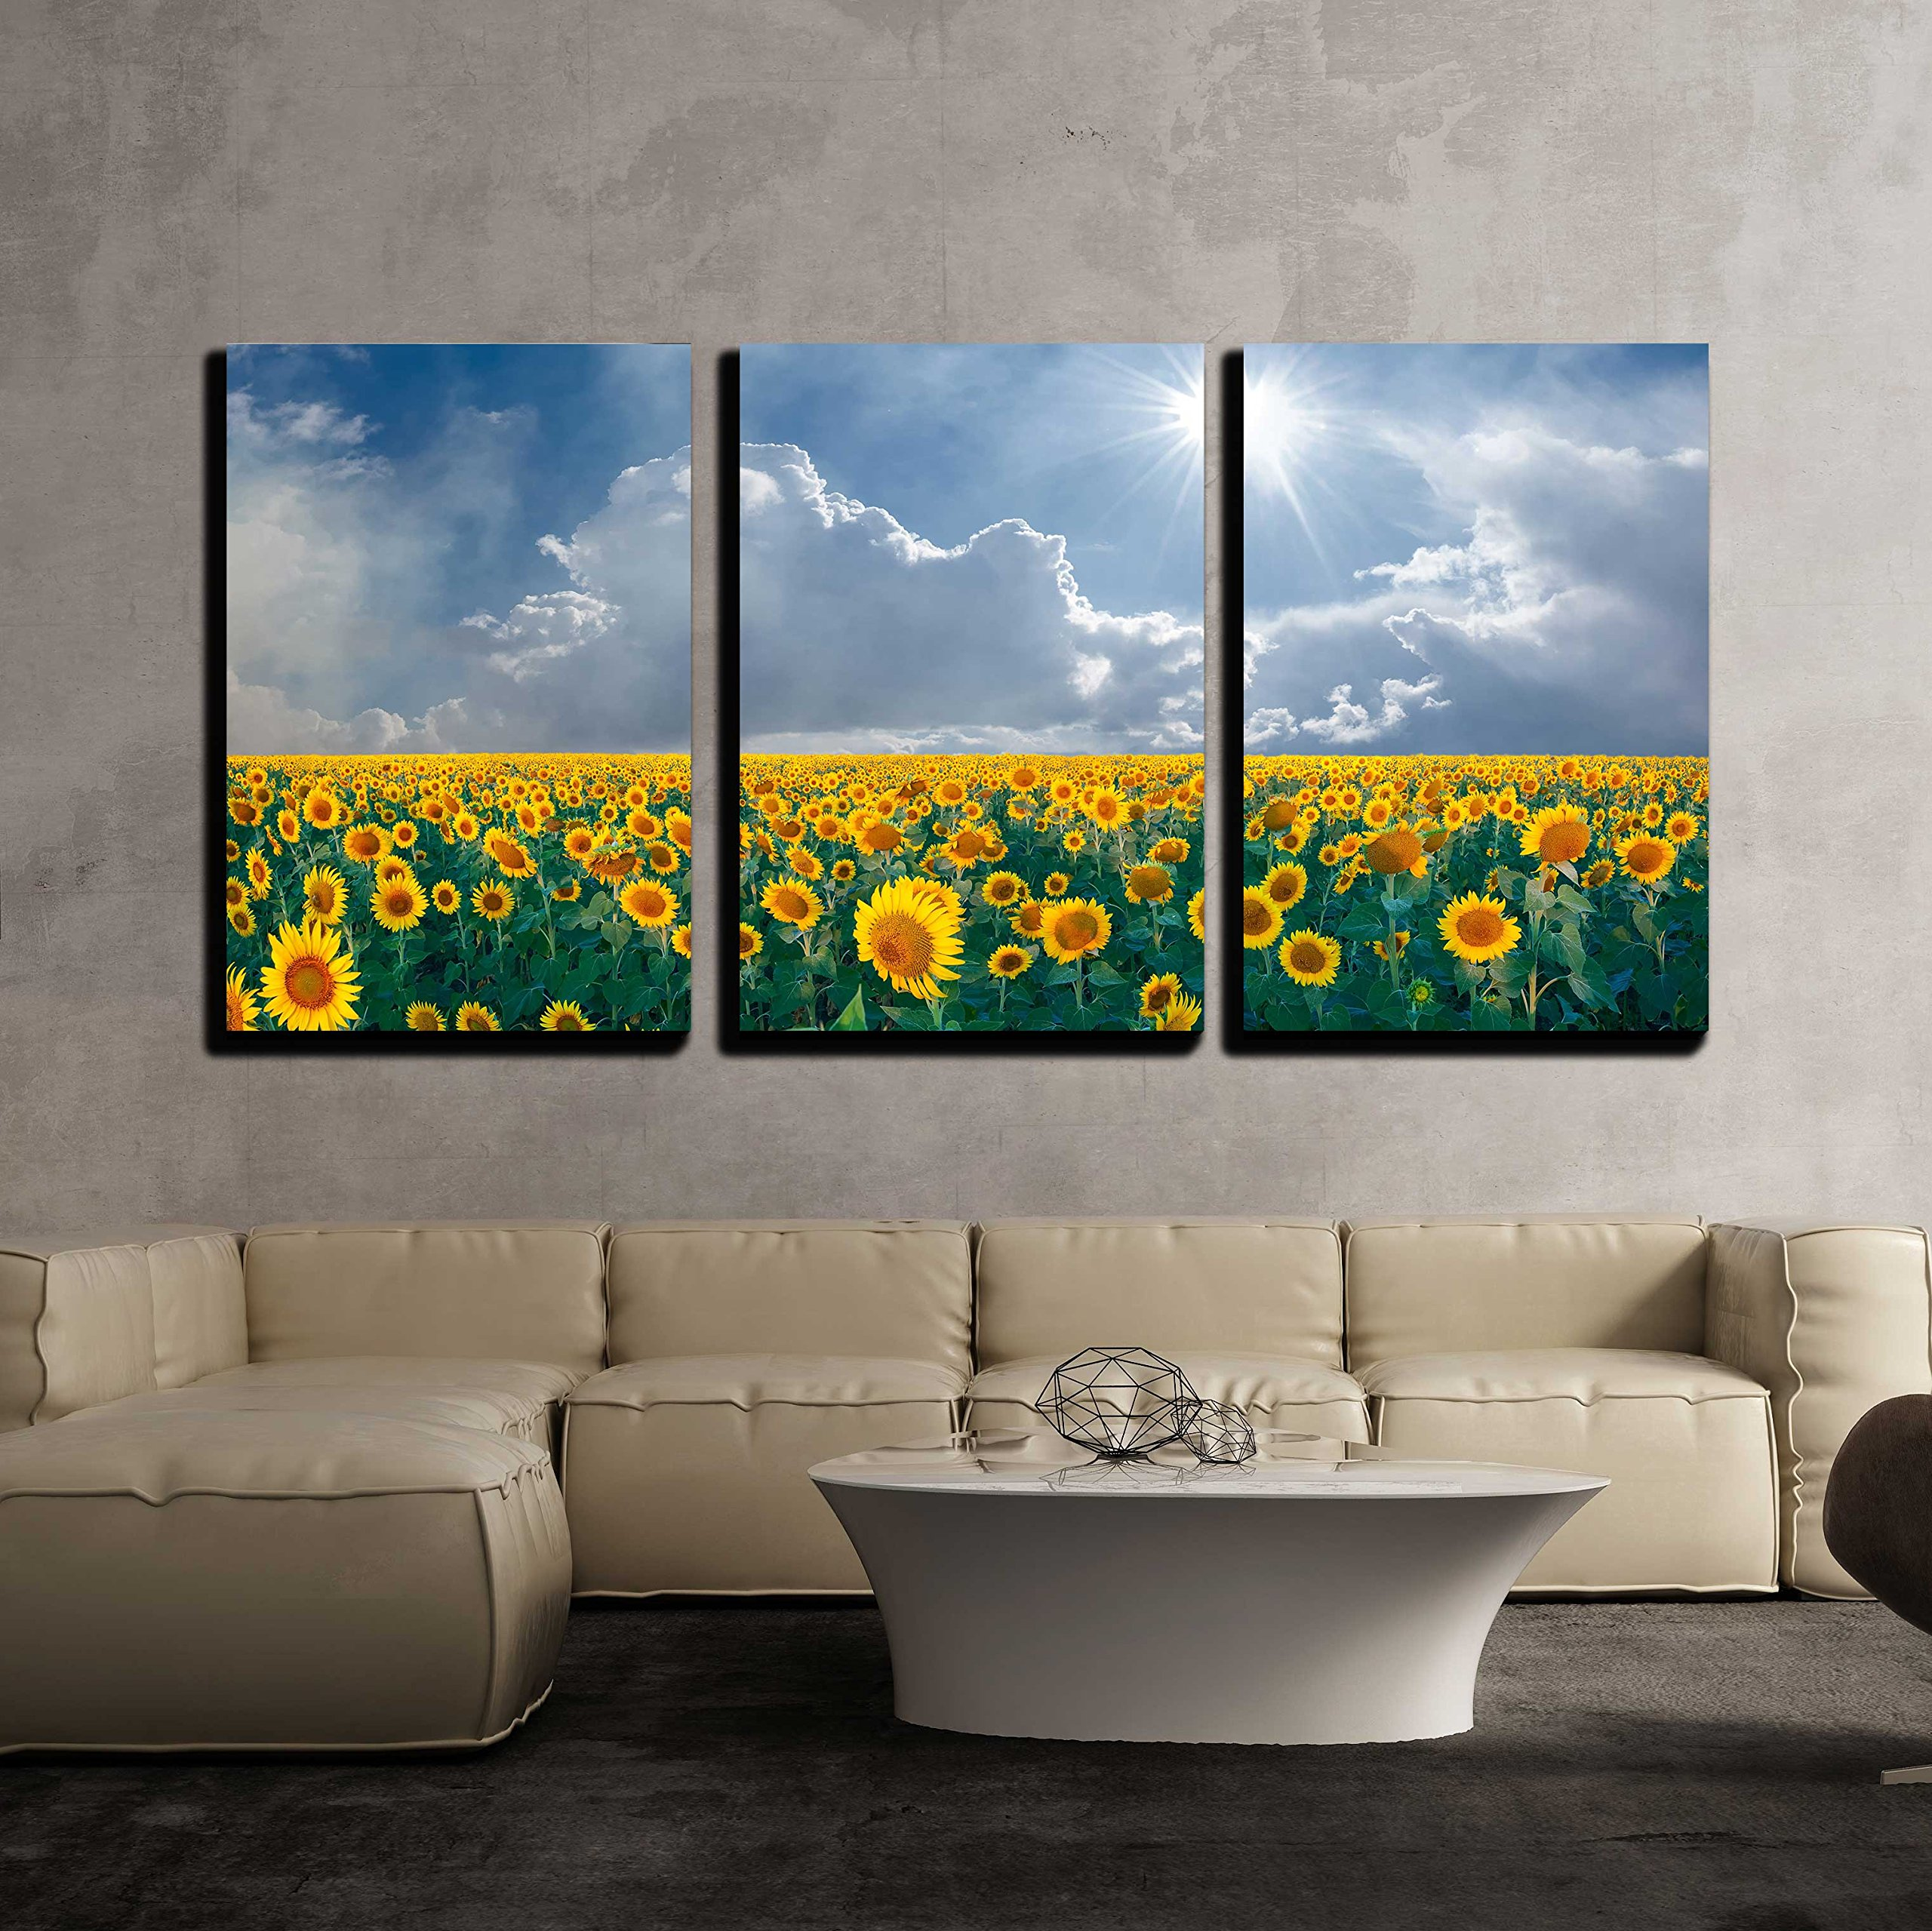 wall26 - 3 Piece Canvas Wall Art - Summer Beautyful Landscape with Big Sunflowers Field and Blue Sky with Clouds - Modern Home Decor Stretched and Framed Ready to Hang - 24''x36''x3 Panels